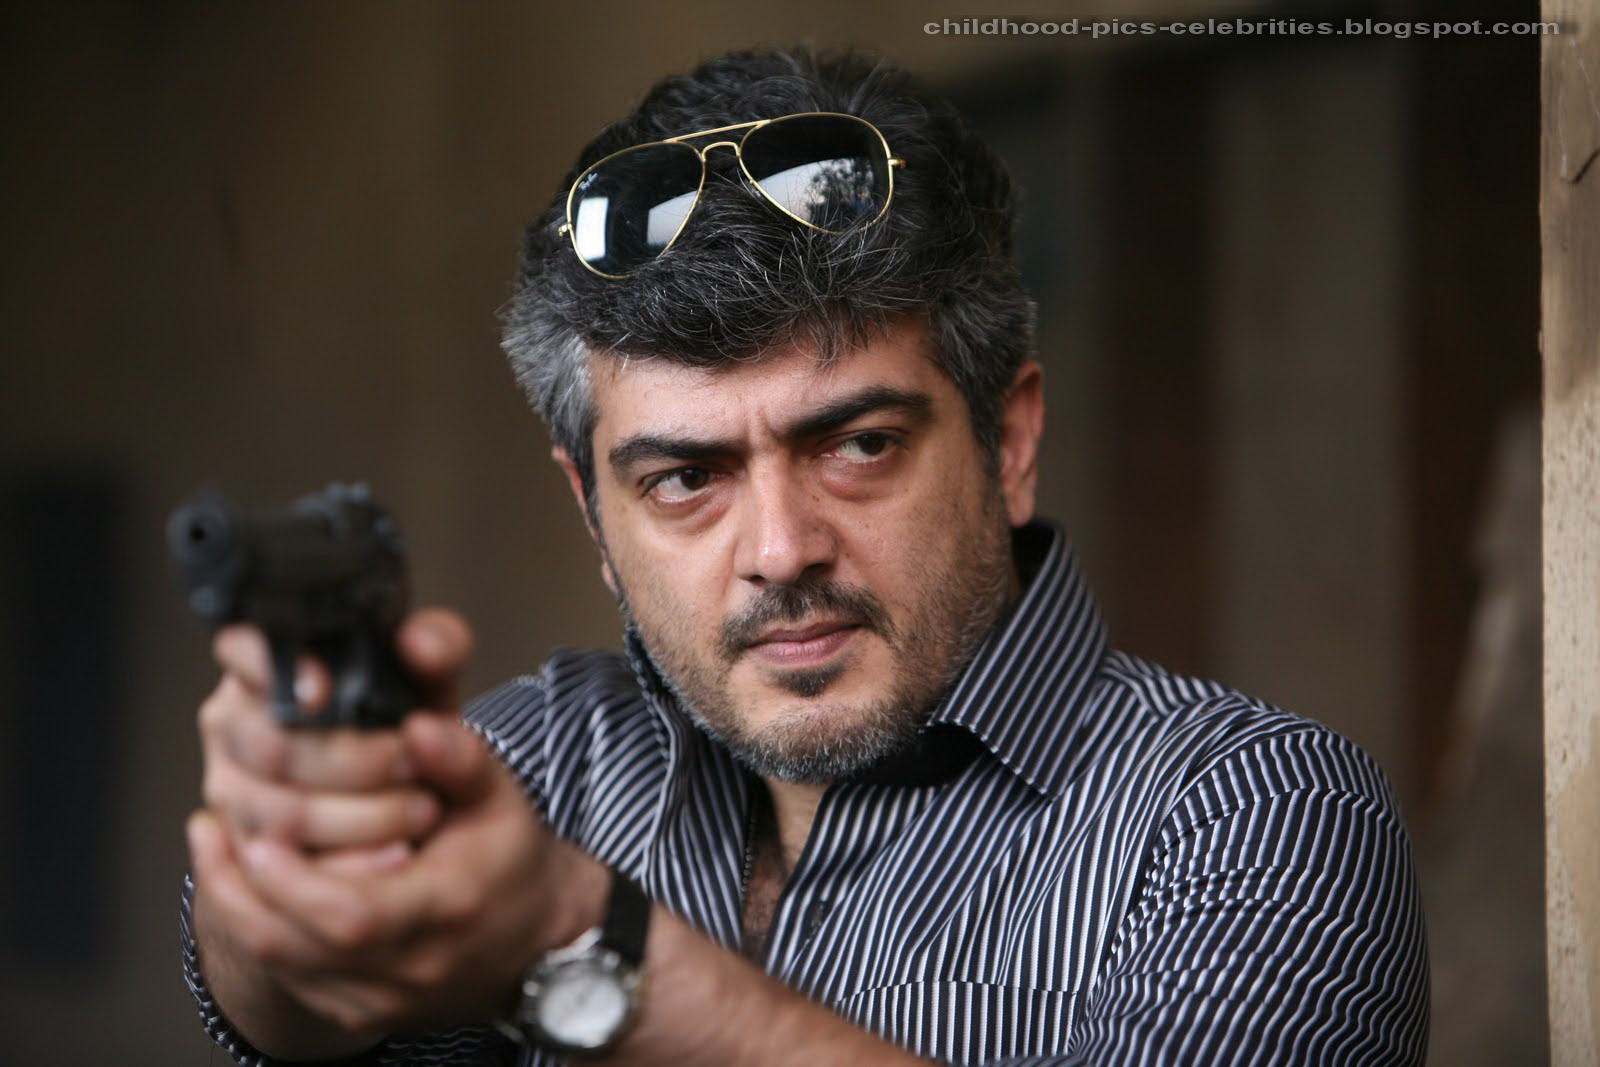 Childhood pictures of Celebrities Actor Actress: Ajith ...  Childhood pictu...